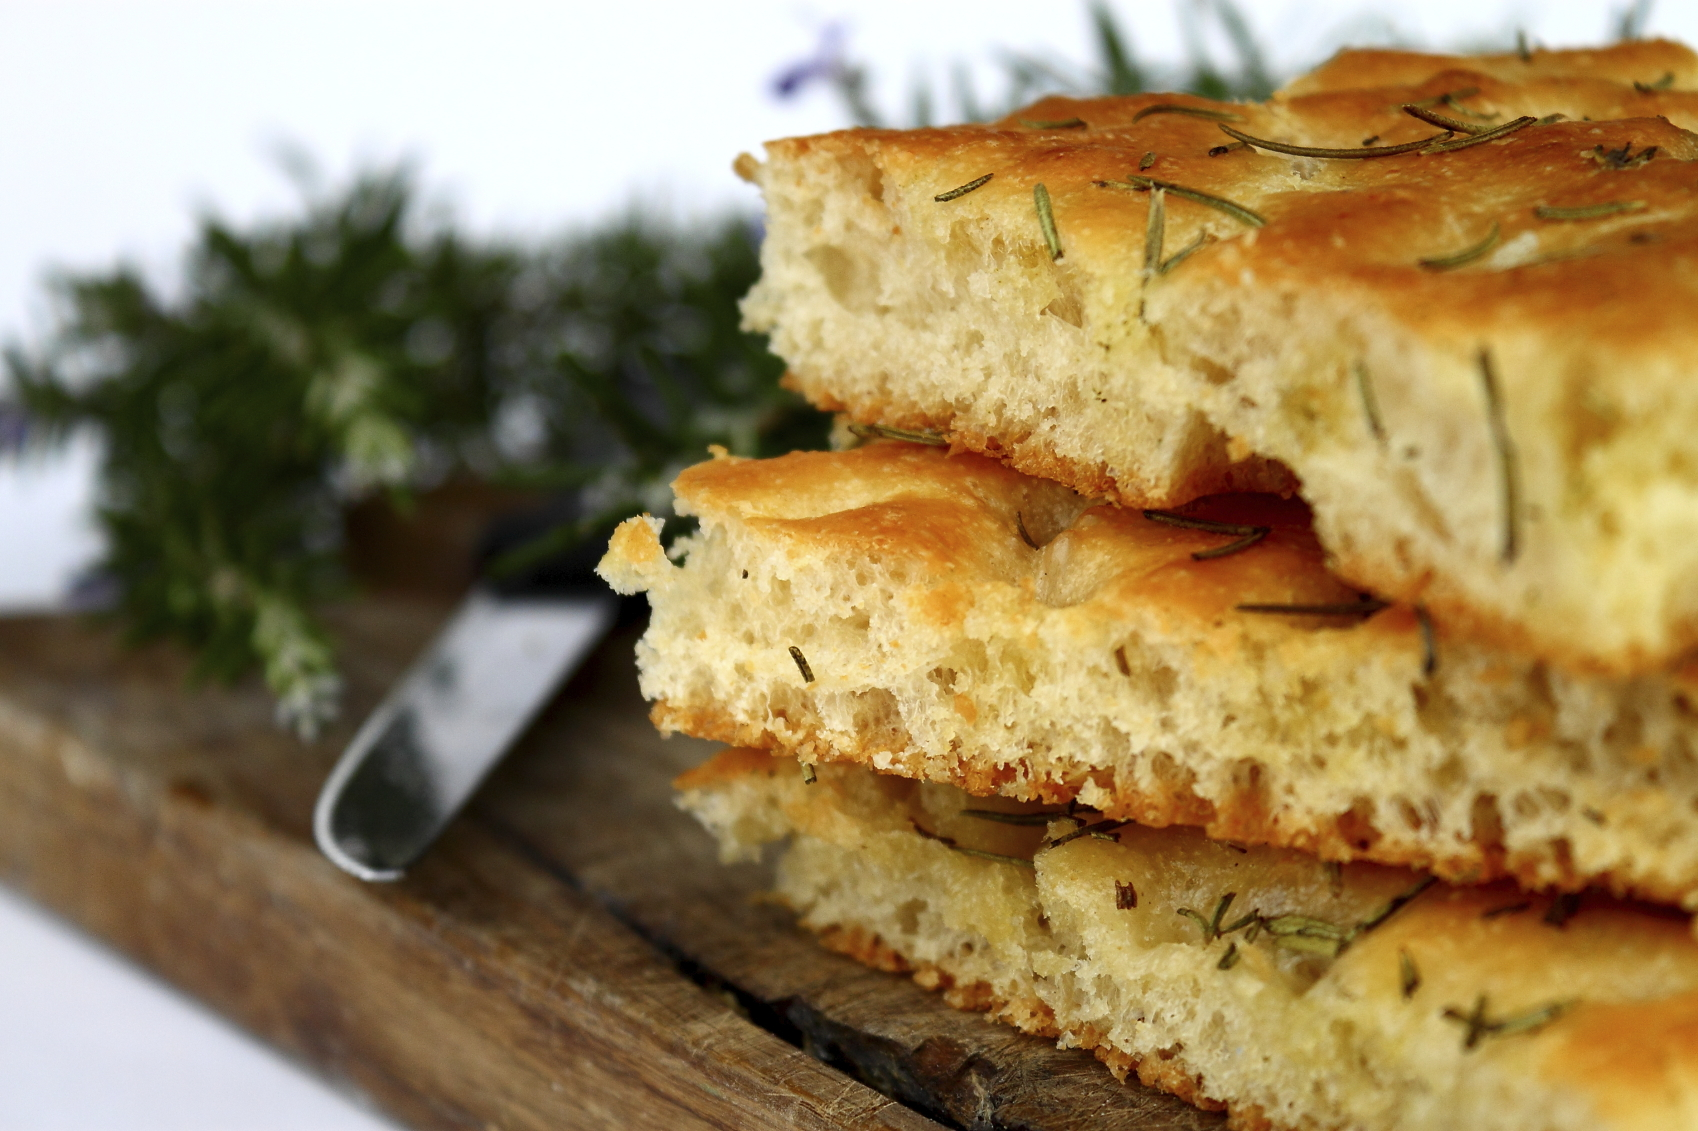 Yeastless potato and rosemary foccacia